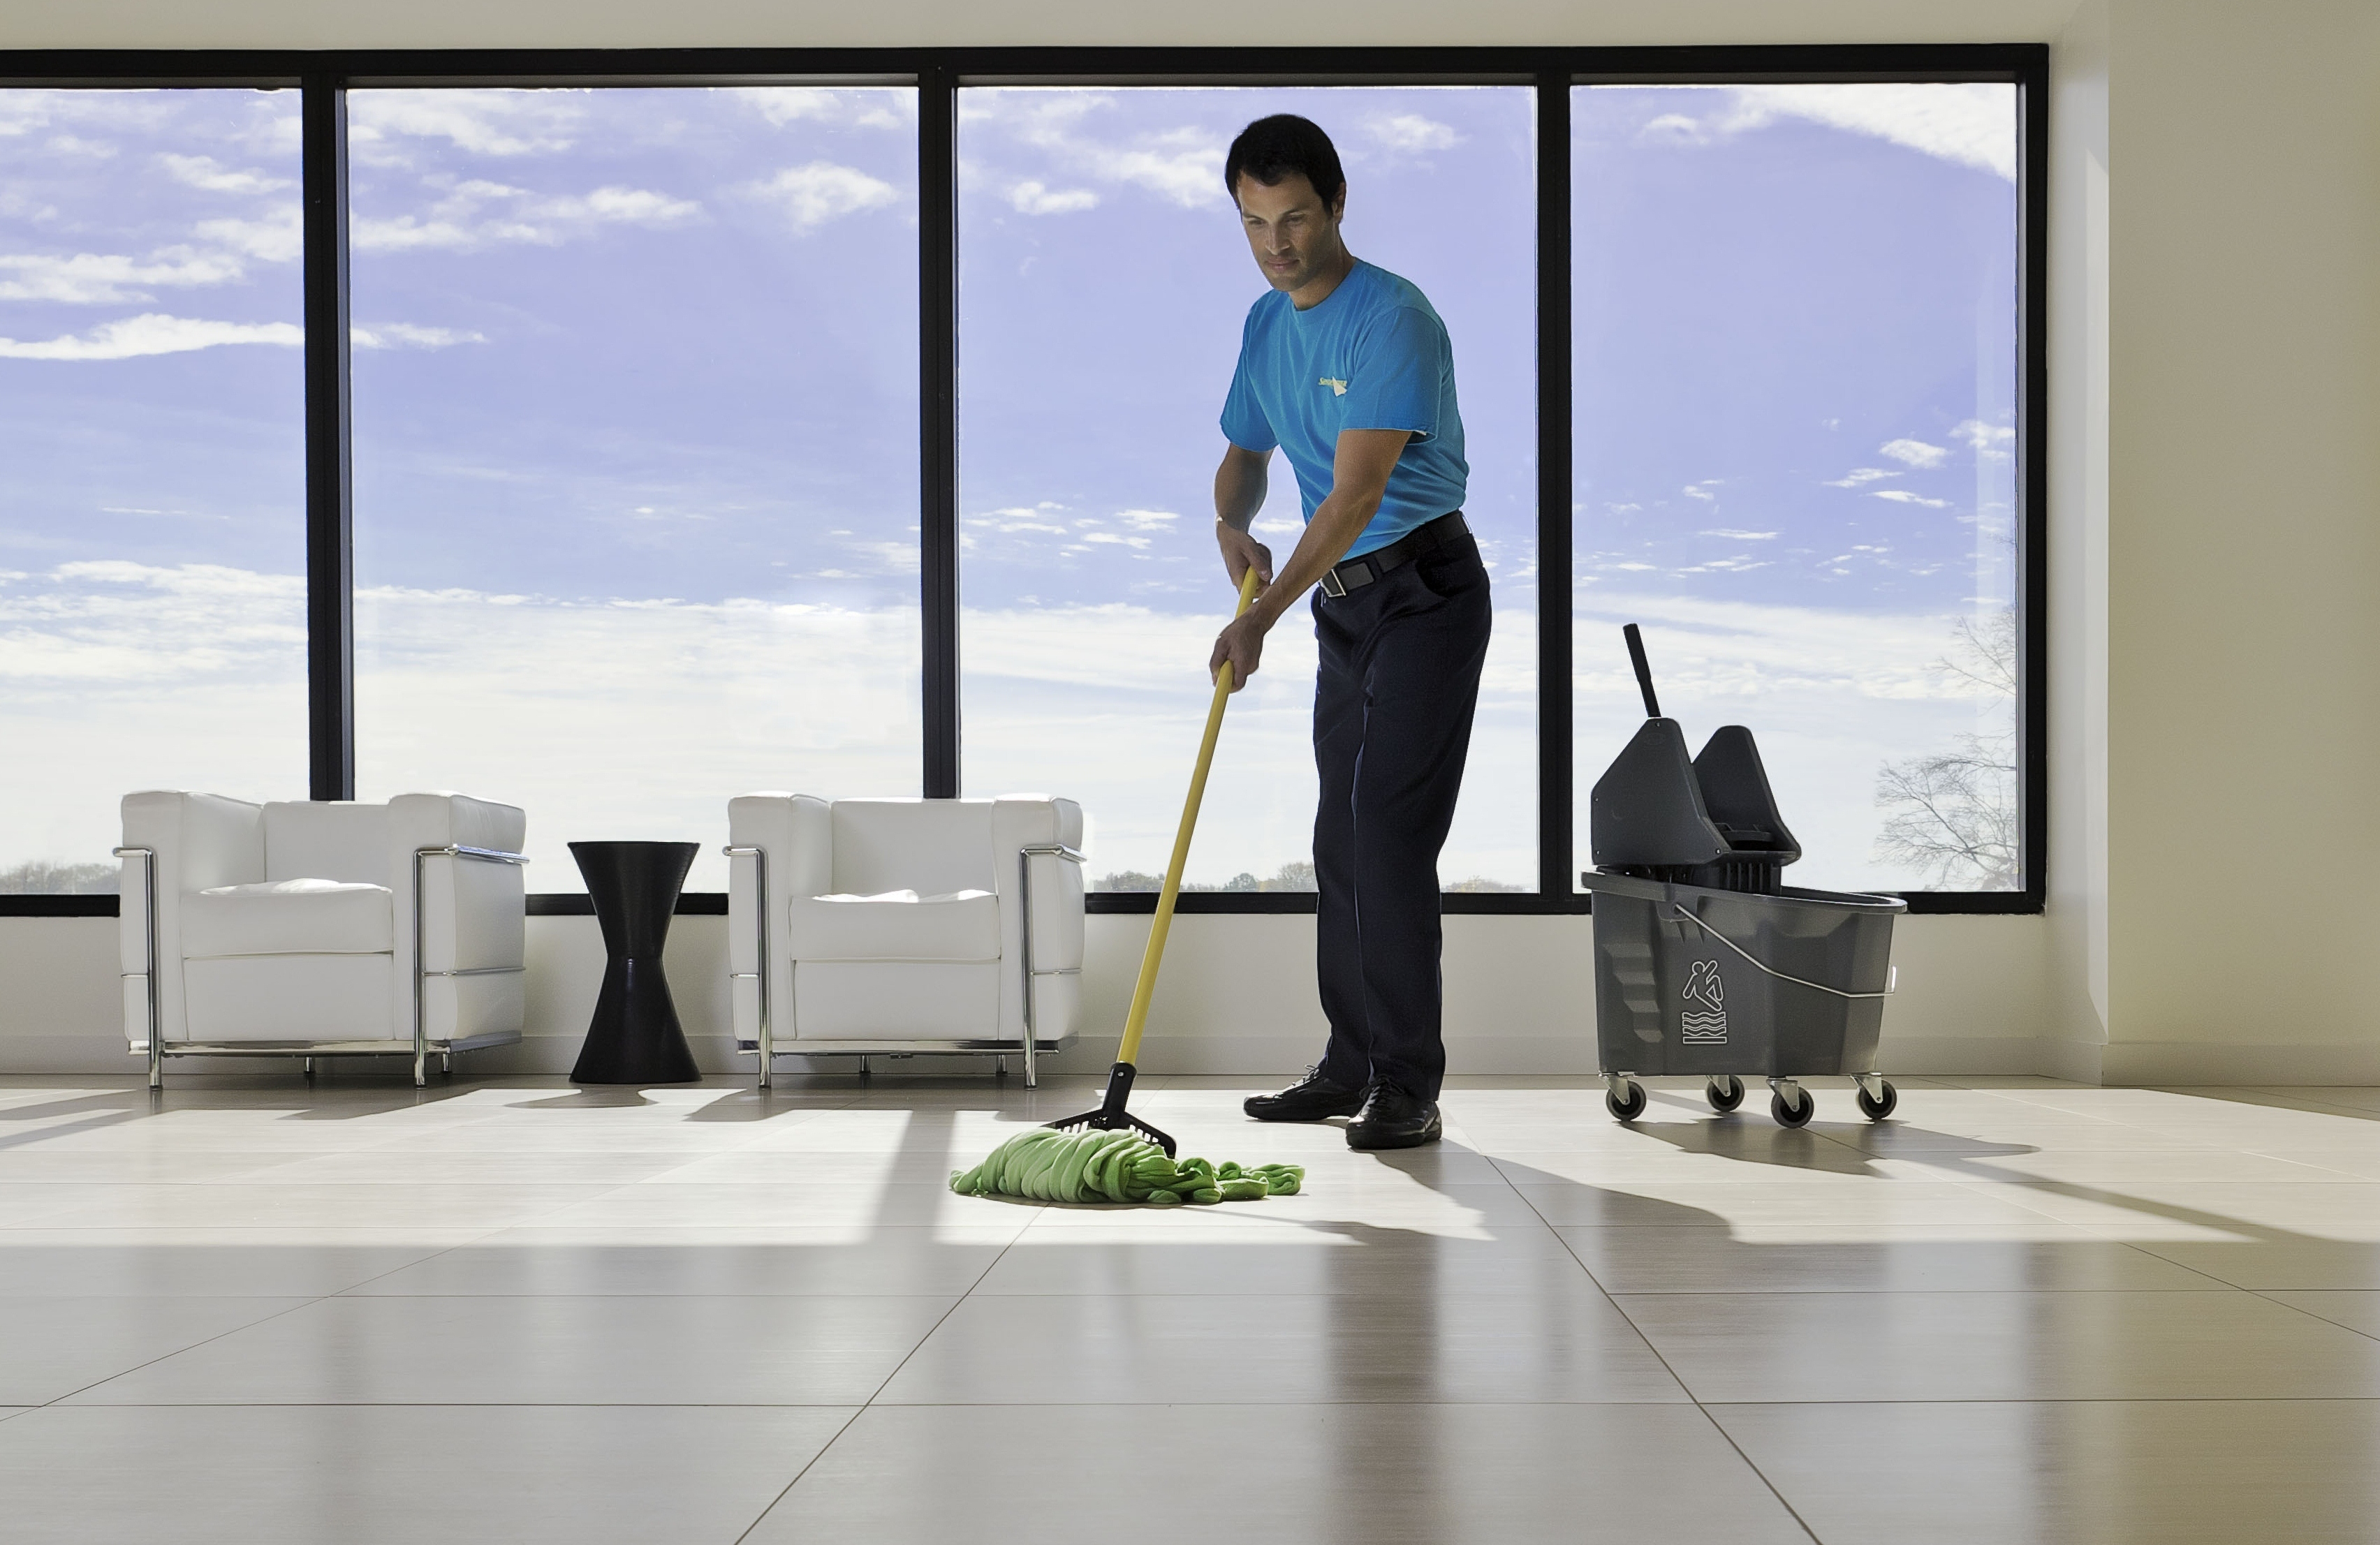 The 5 modern rules of commercial cleaning